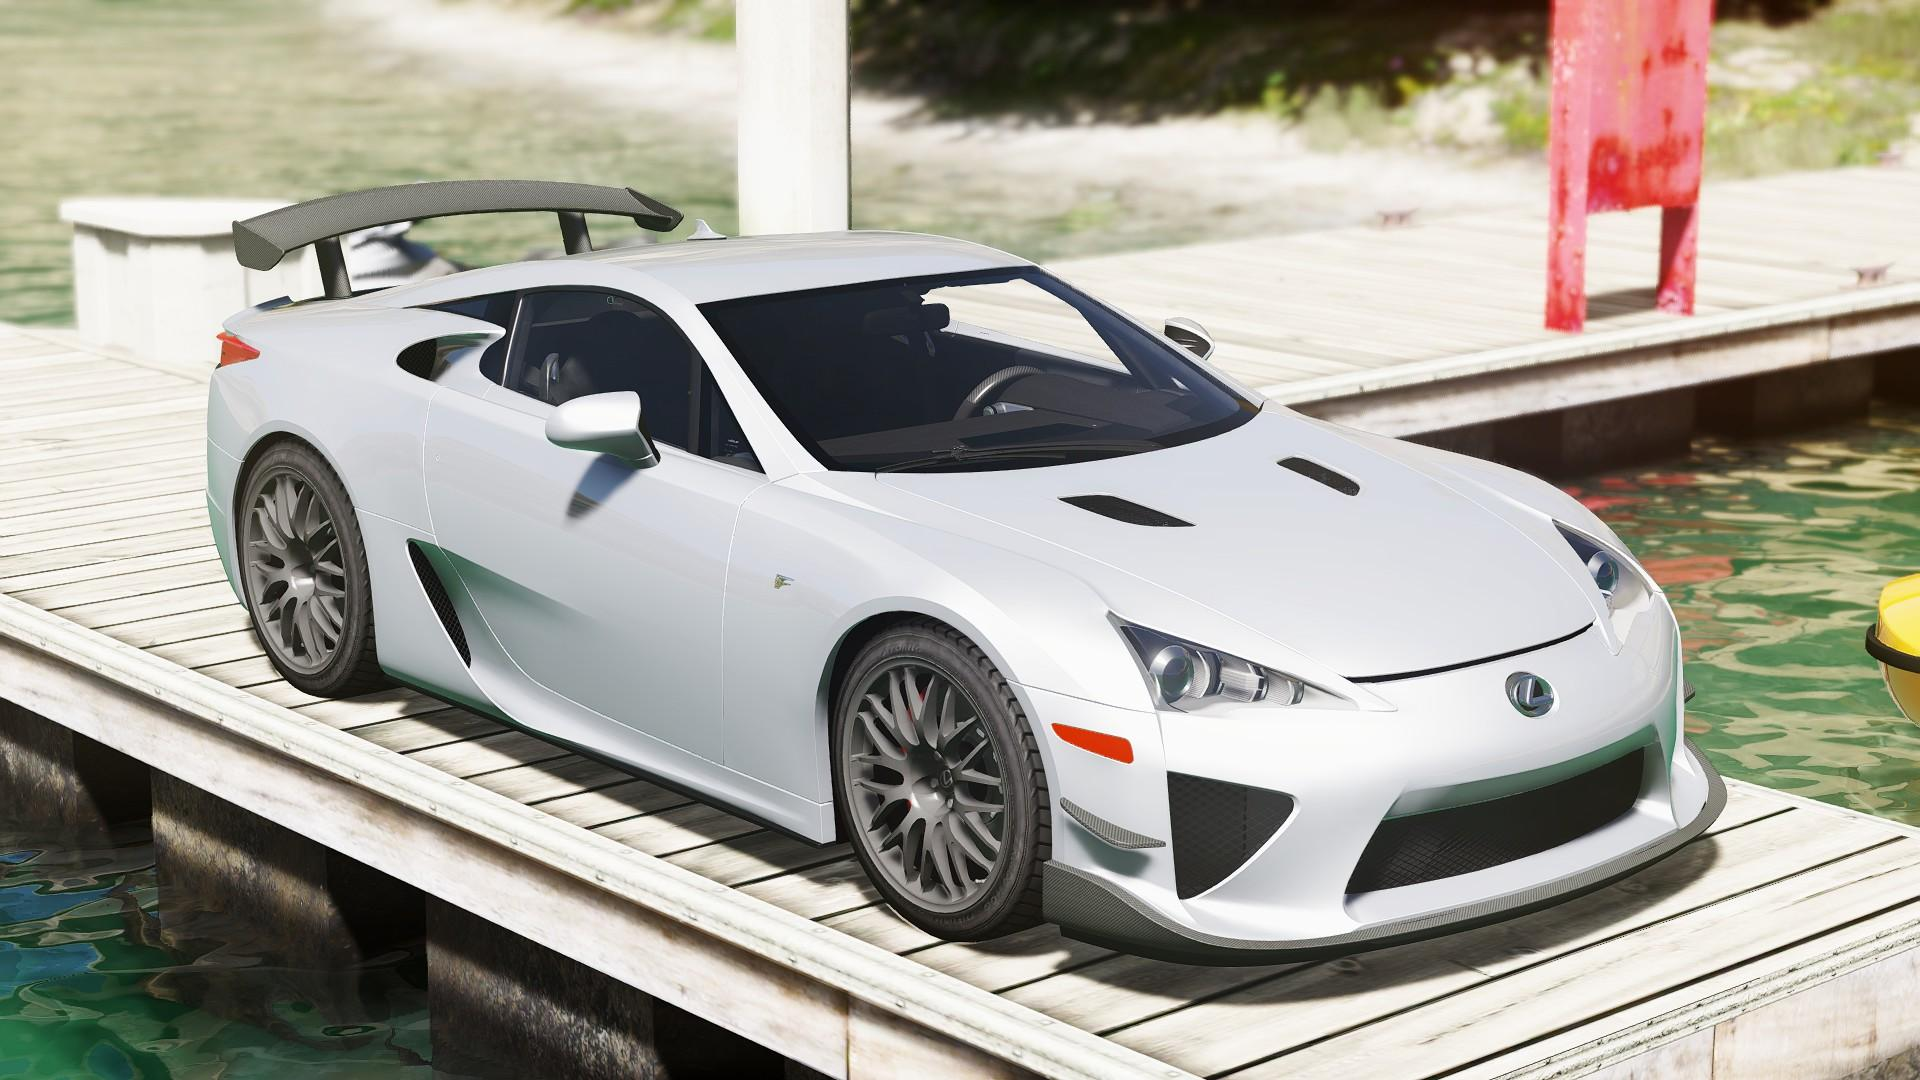 2012 lexus lfa nurburgring package add on gta5. Black Bedroom Furniture Sets. Home Design Ideas